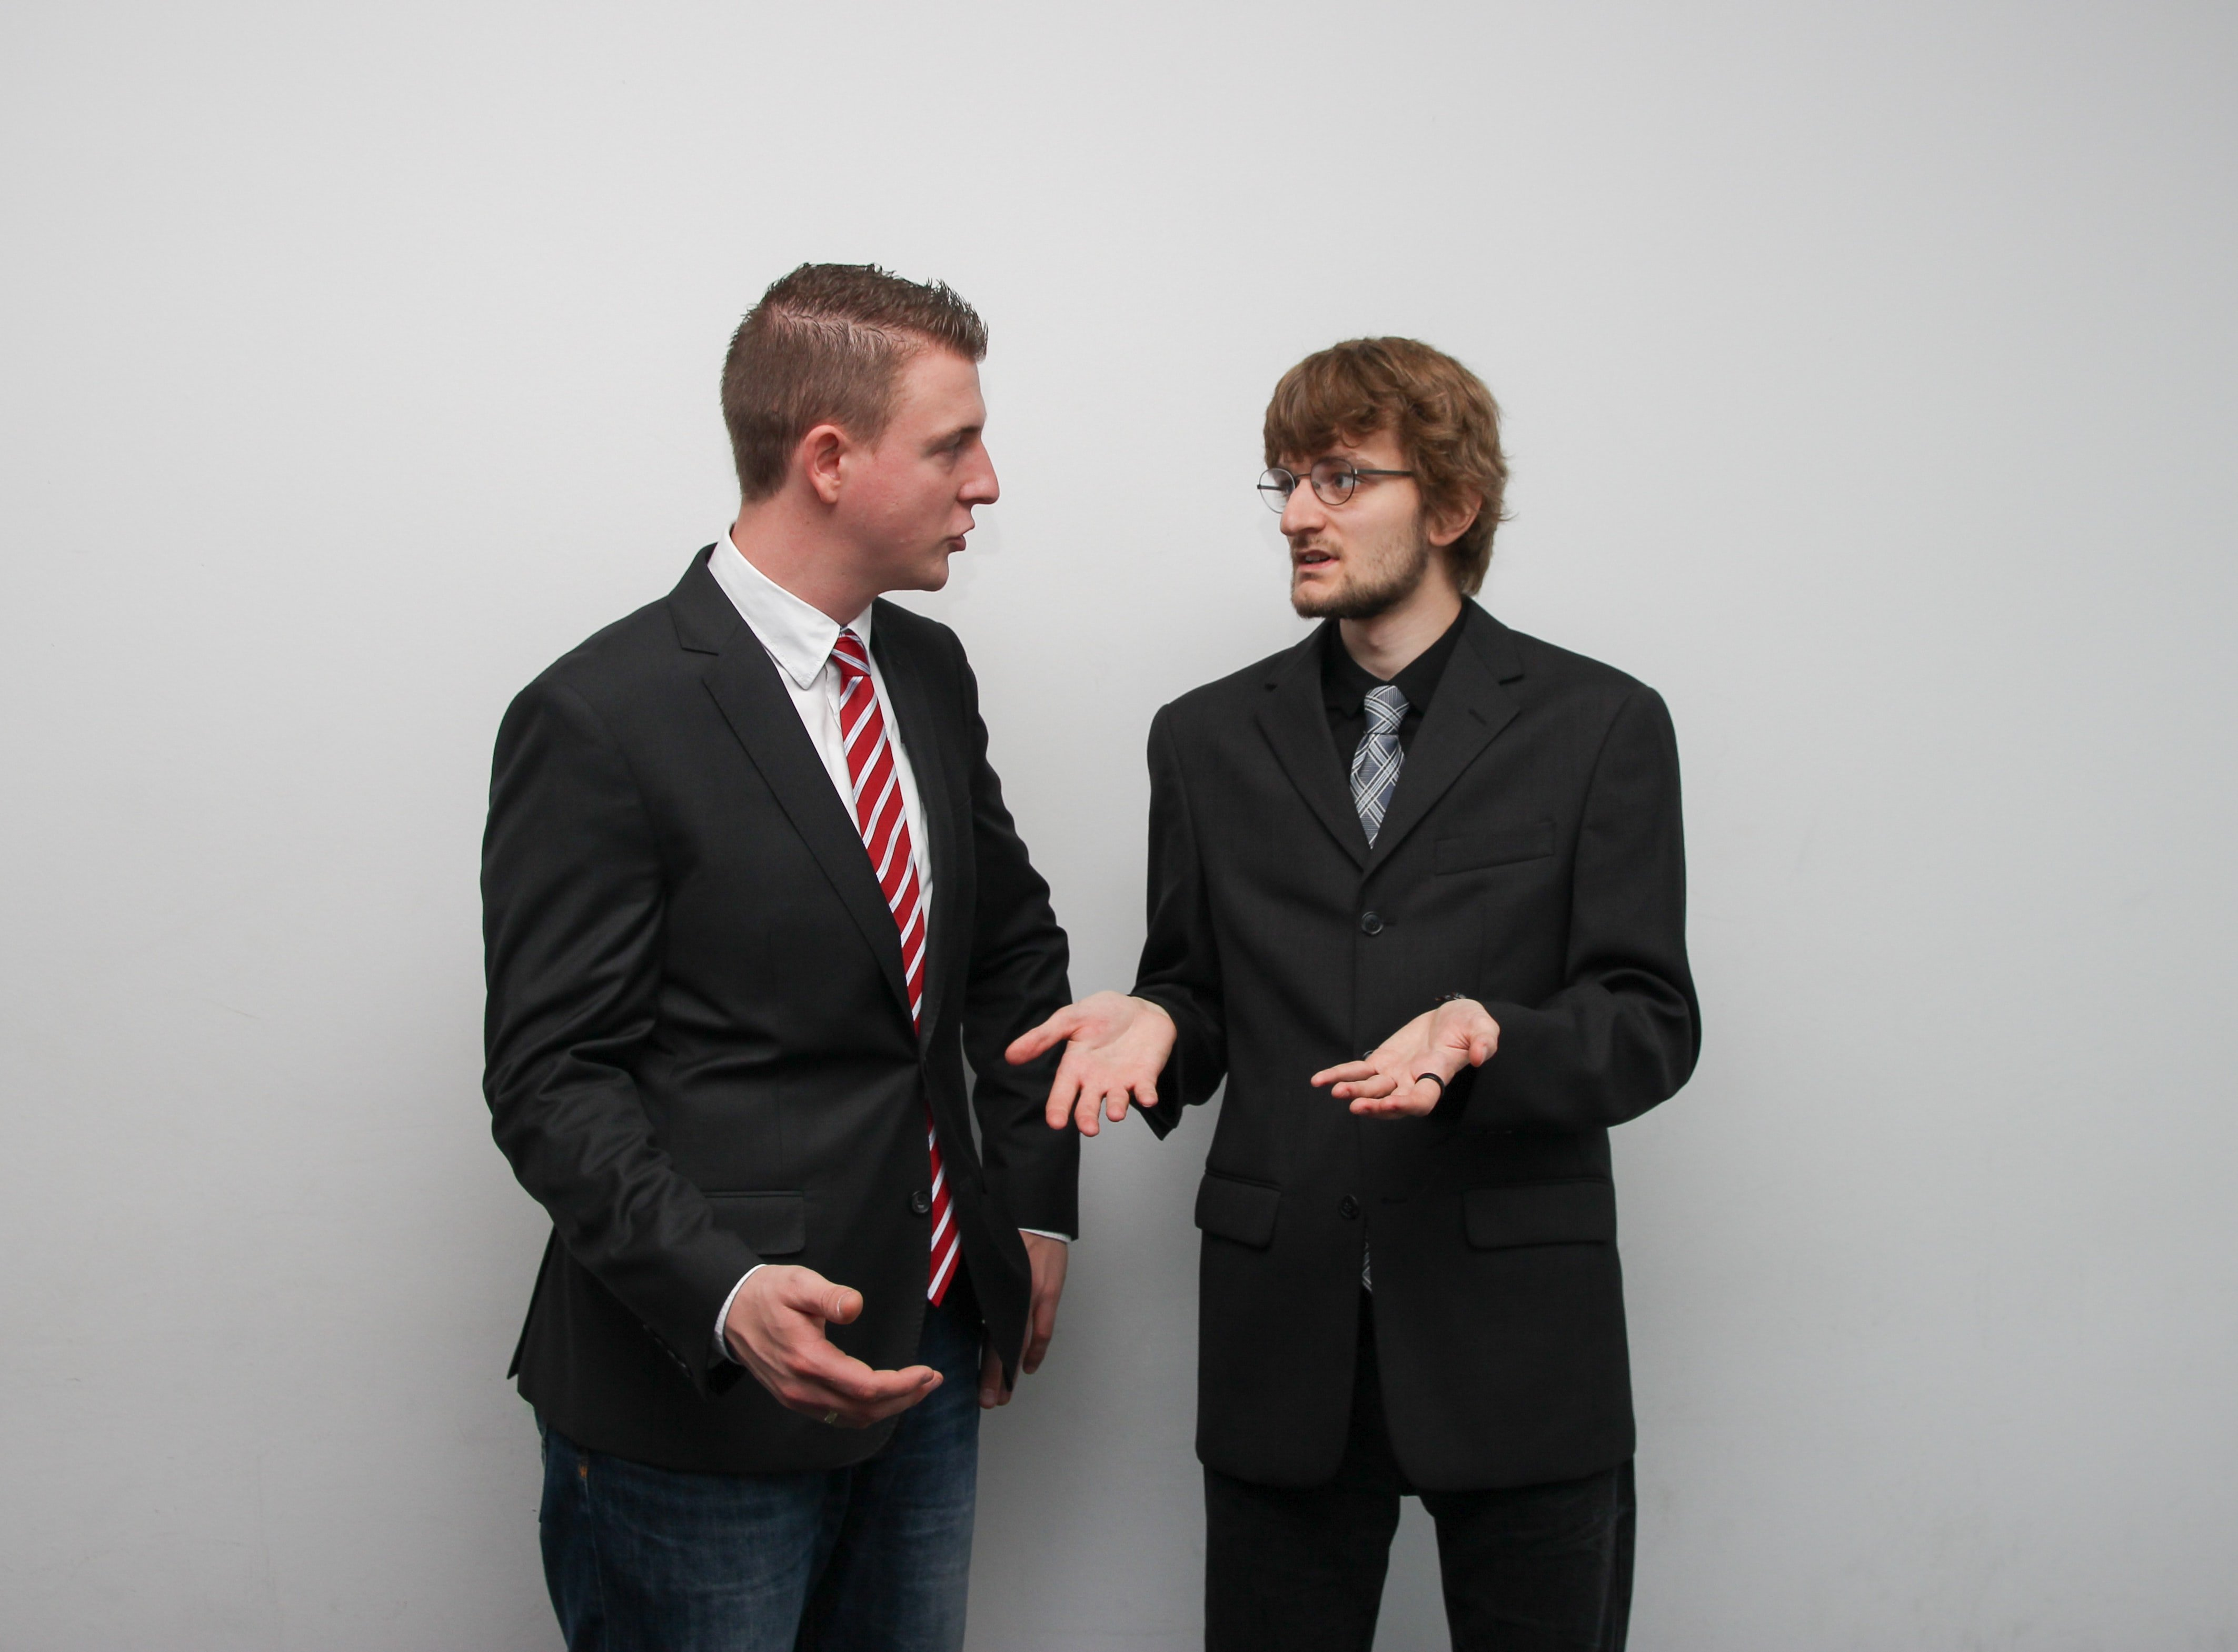 Two men involved in a heated argument | Photo: Unsplash